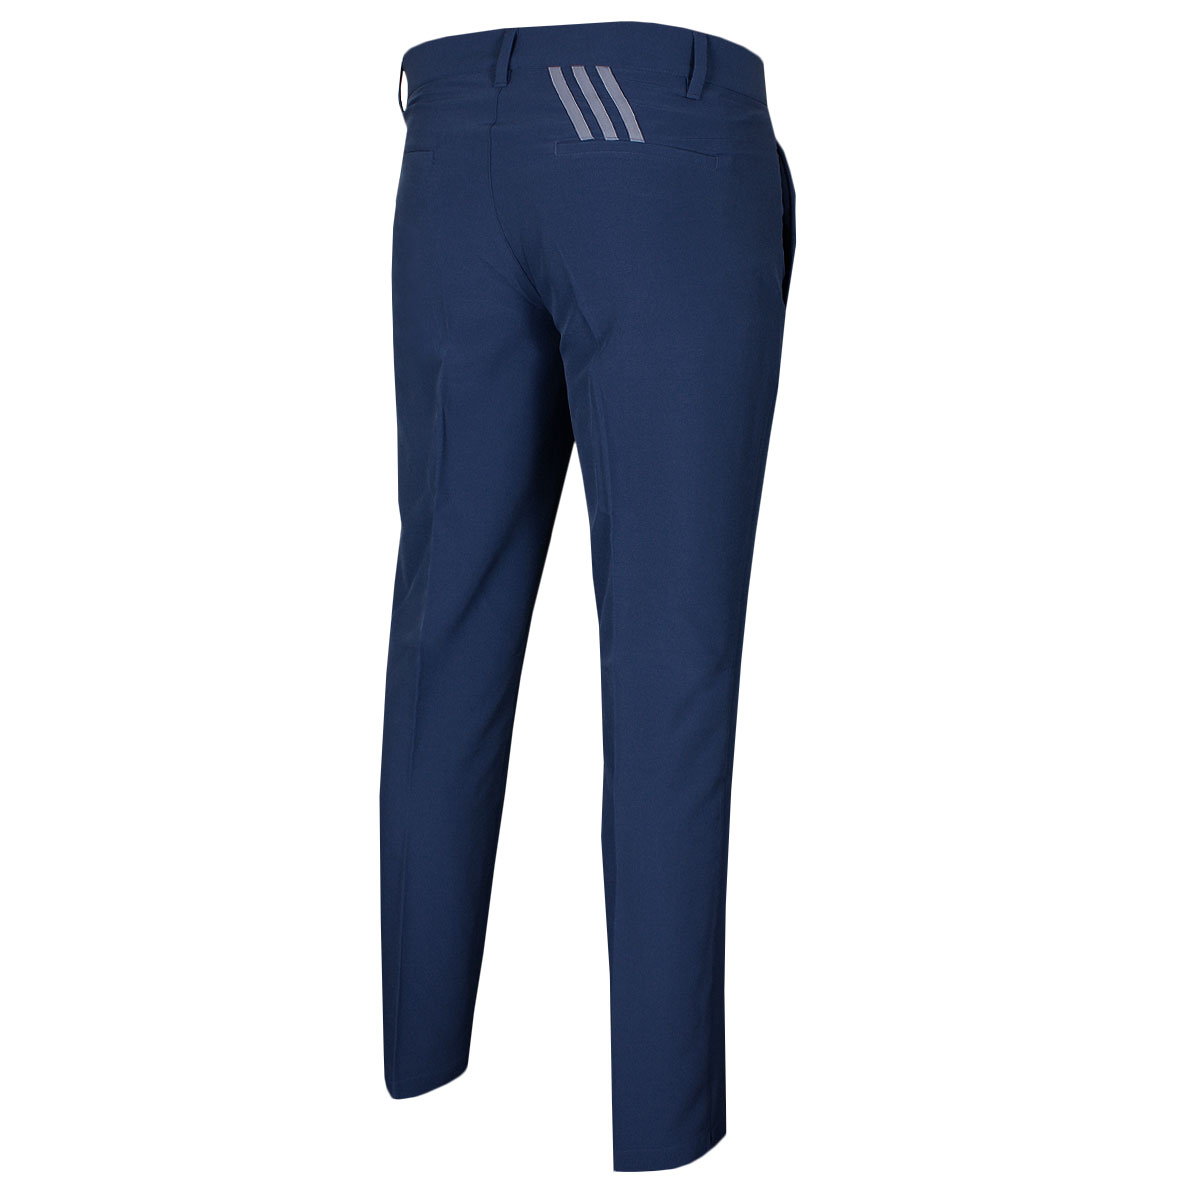 adidas-Golf-Mens-Ultimate-3-Stripes-Stretch-Pant-Trousers-44-OFF-RRP Indexbild 37